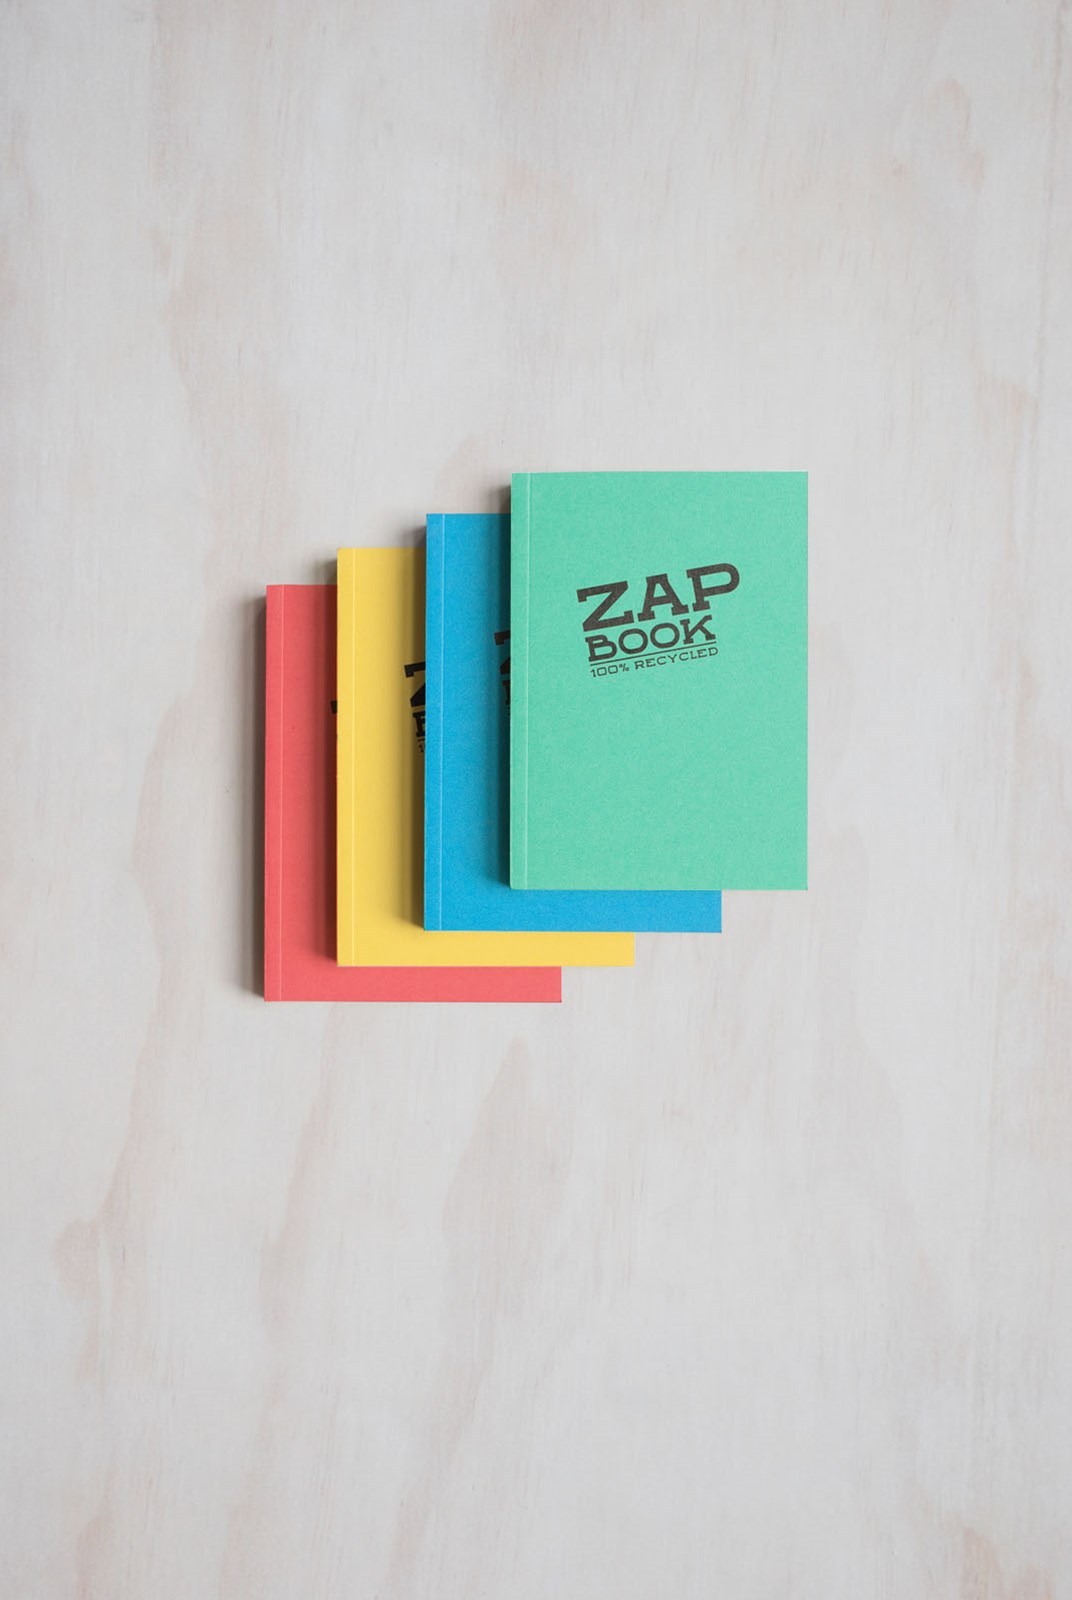 Clairefontaine - Zap Book - Plain - Pocket - Assorted Colours